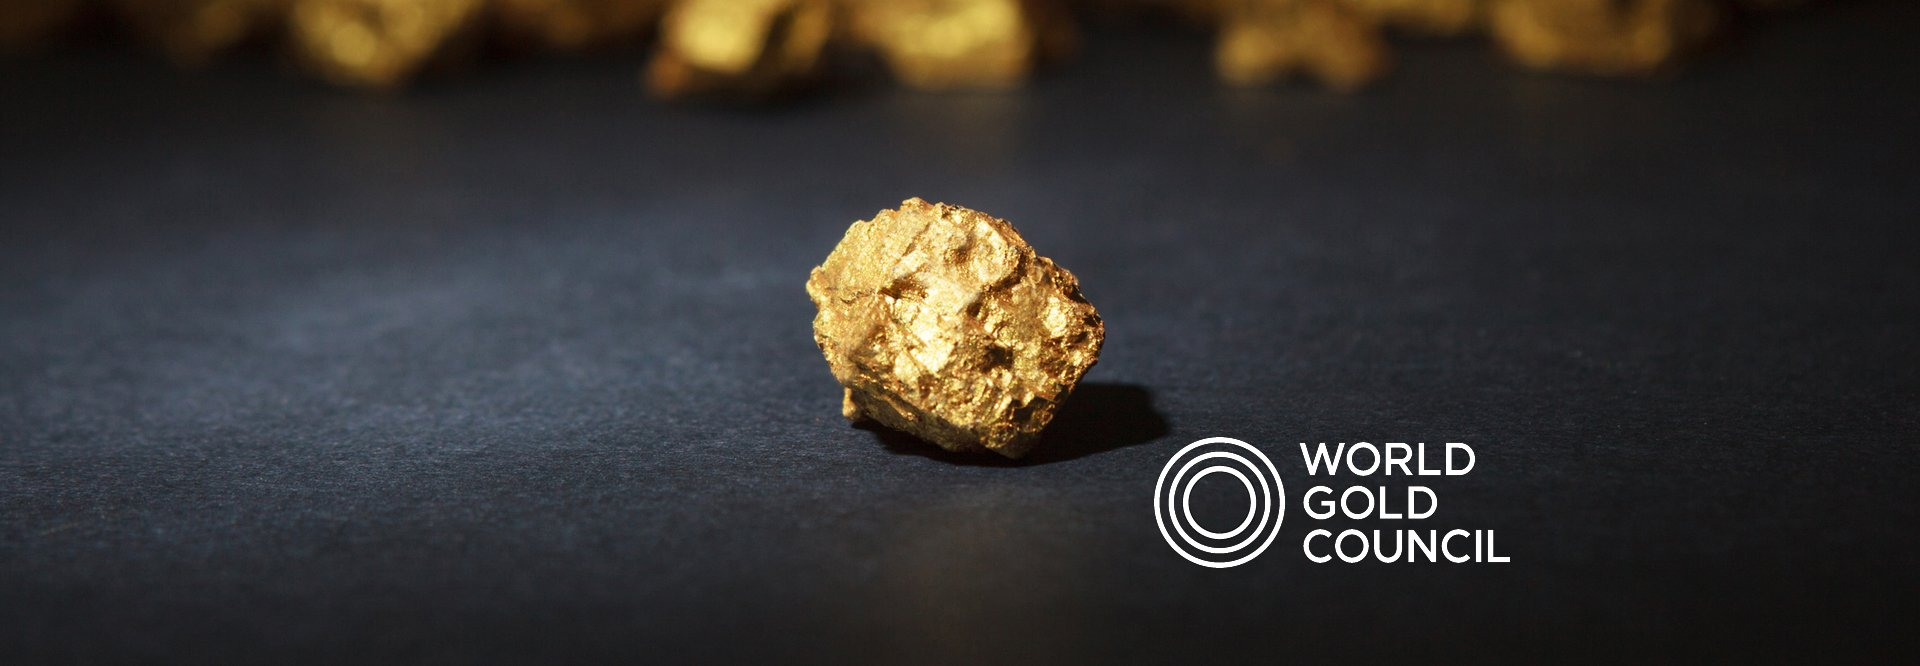 WGC - World Gold Council